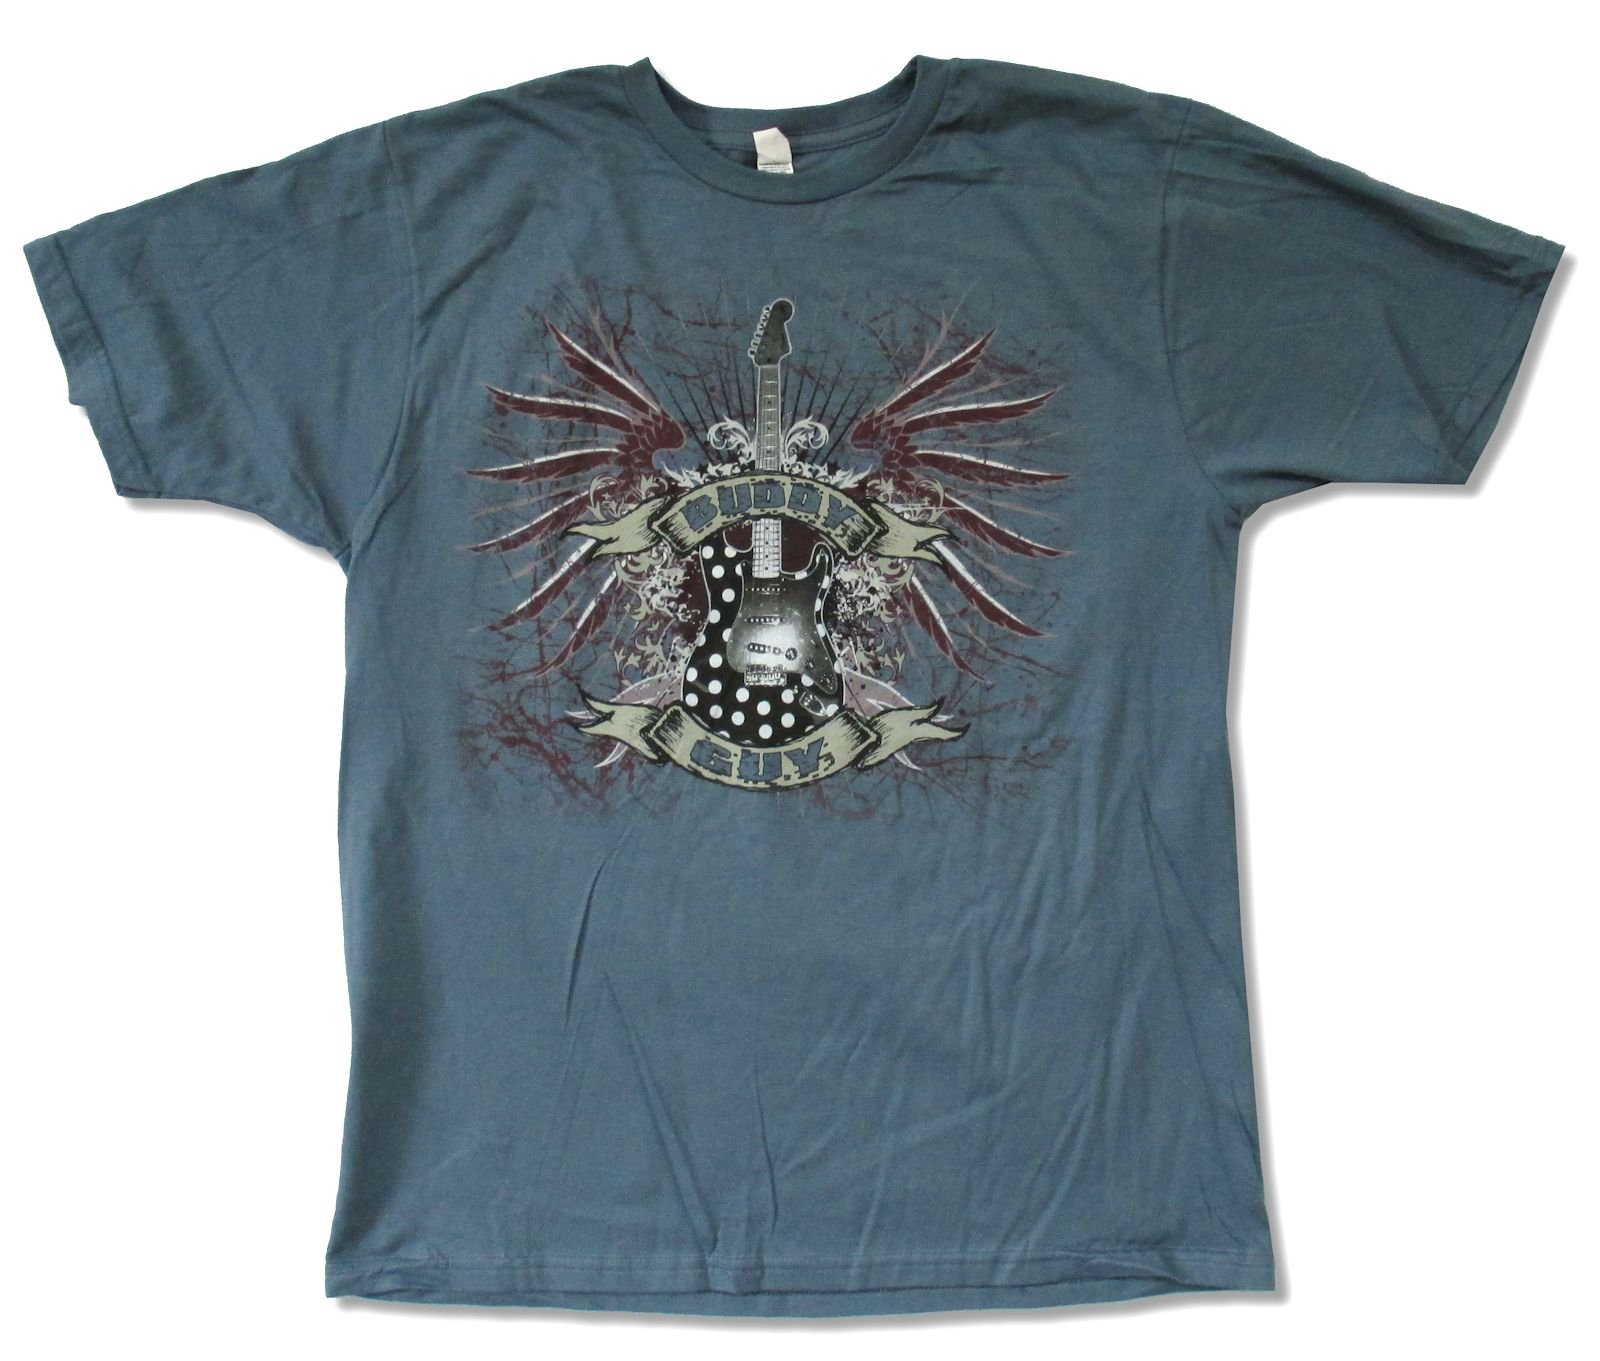 Adult Buddy Guy ''Gothic Guitar Slate Blue Tour 2012 (SD-Coconut Creek)'' T-Shirt (Large)